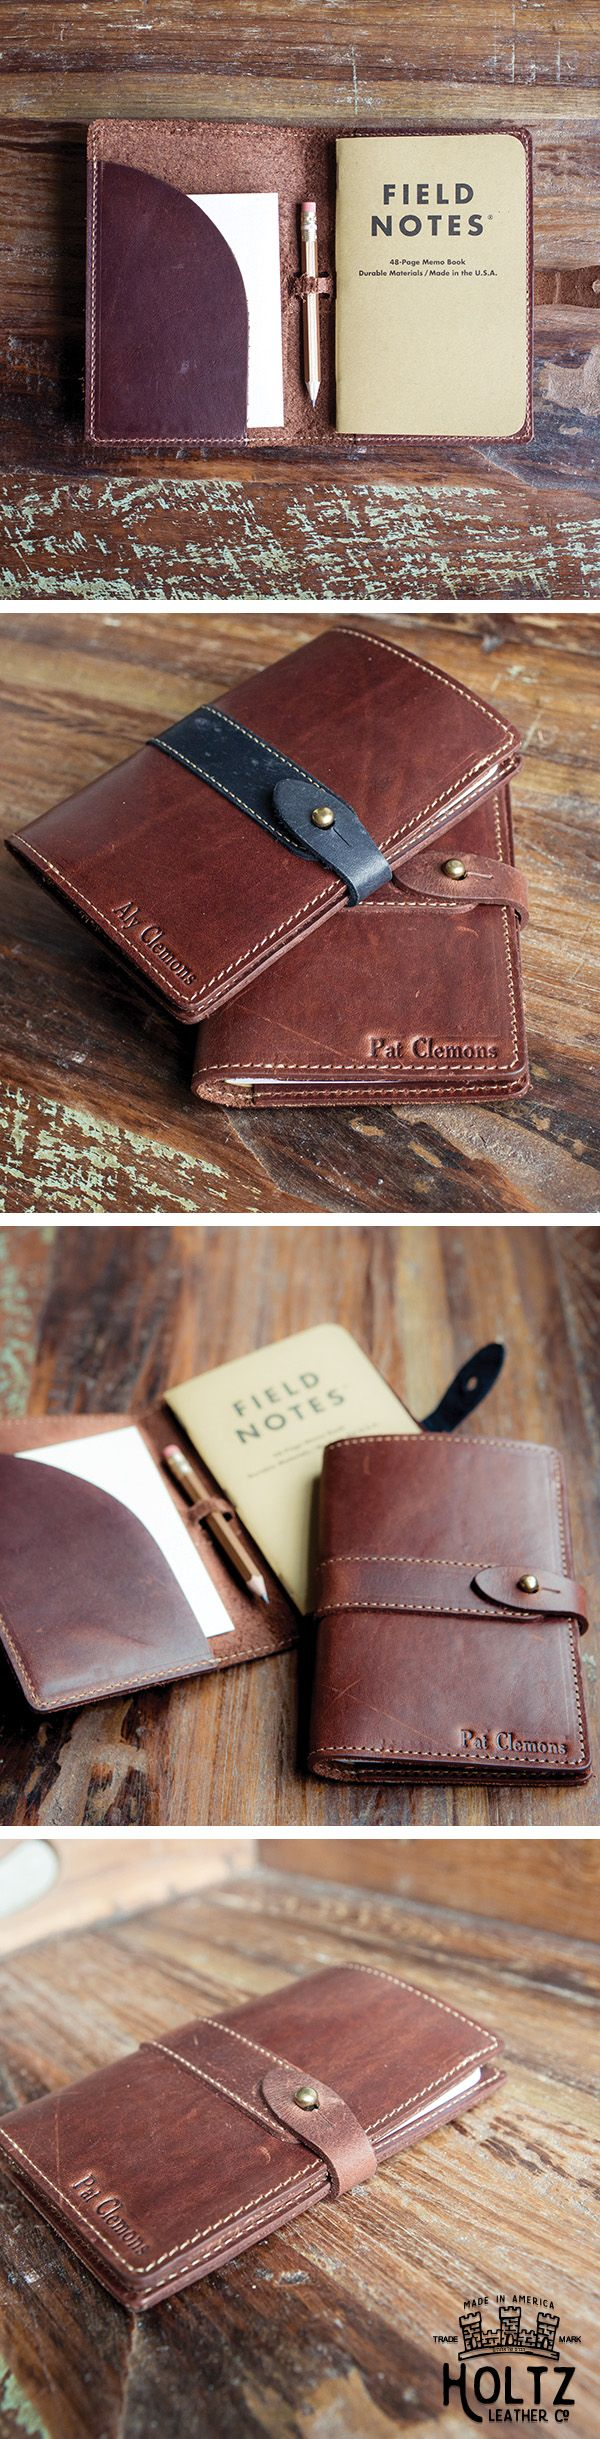 The Surveyor Fine Leather Journal is a gift your groomsmen will use and love for a lifetime.  This journal includes one small field notes journal and a pencil.  Add their initials to make it a memorable keepsake.